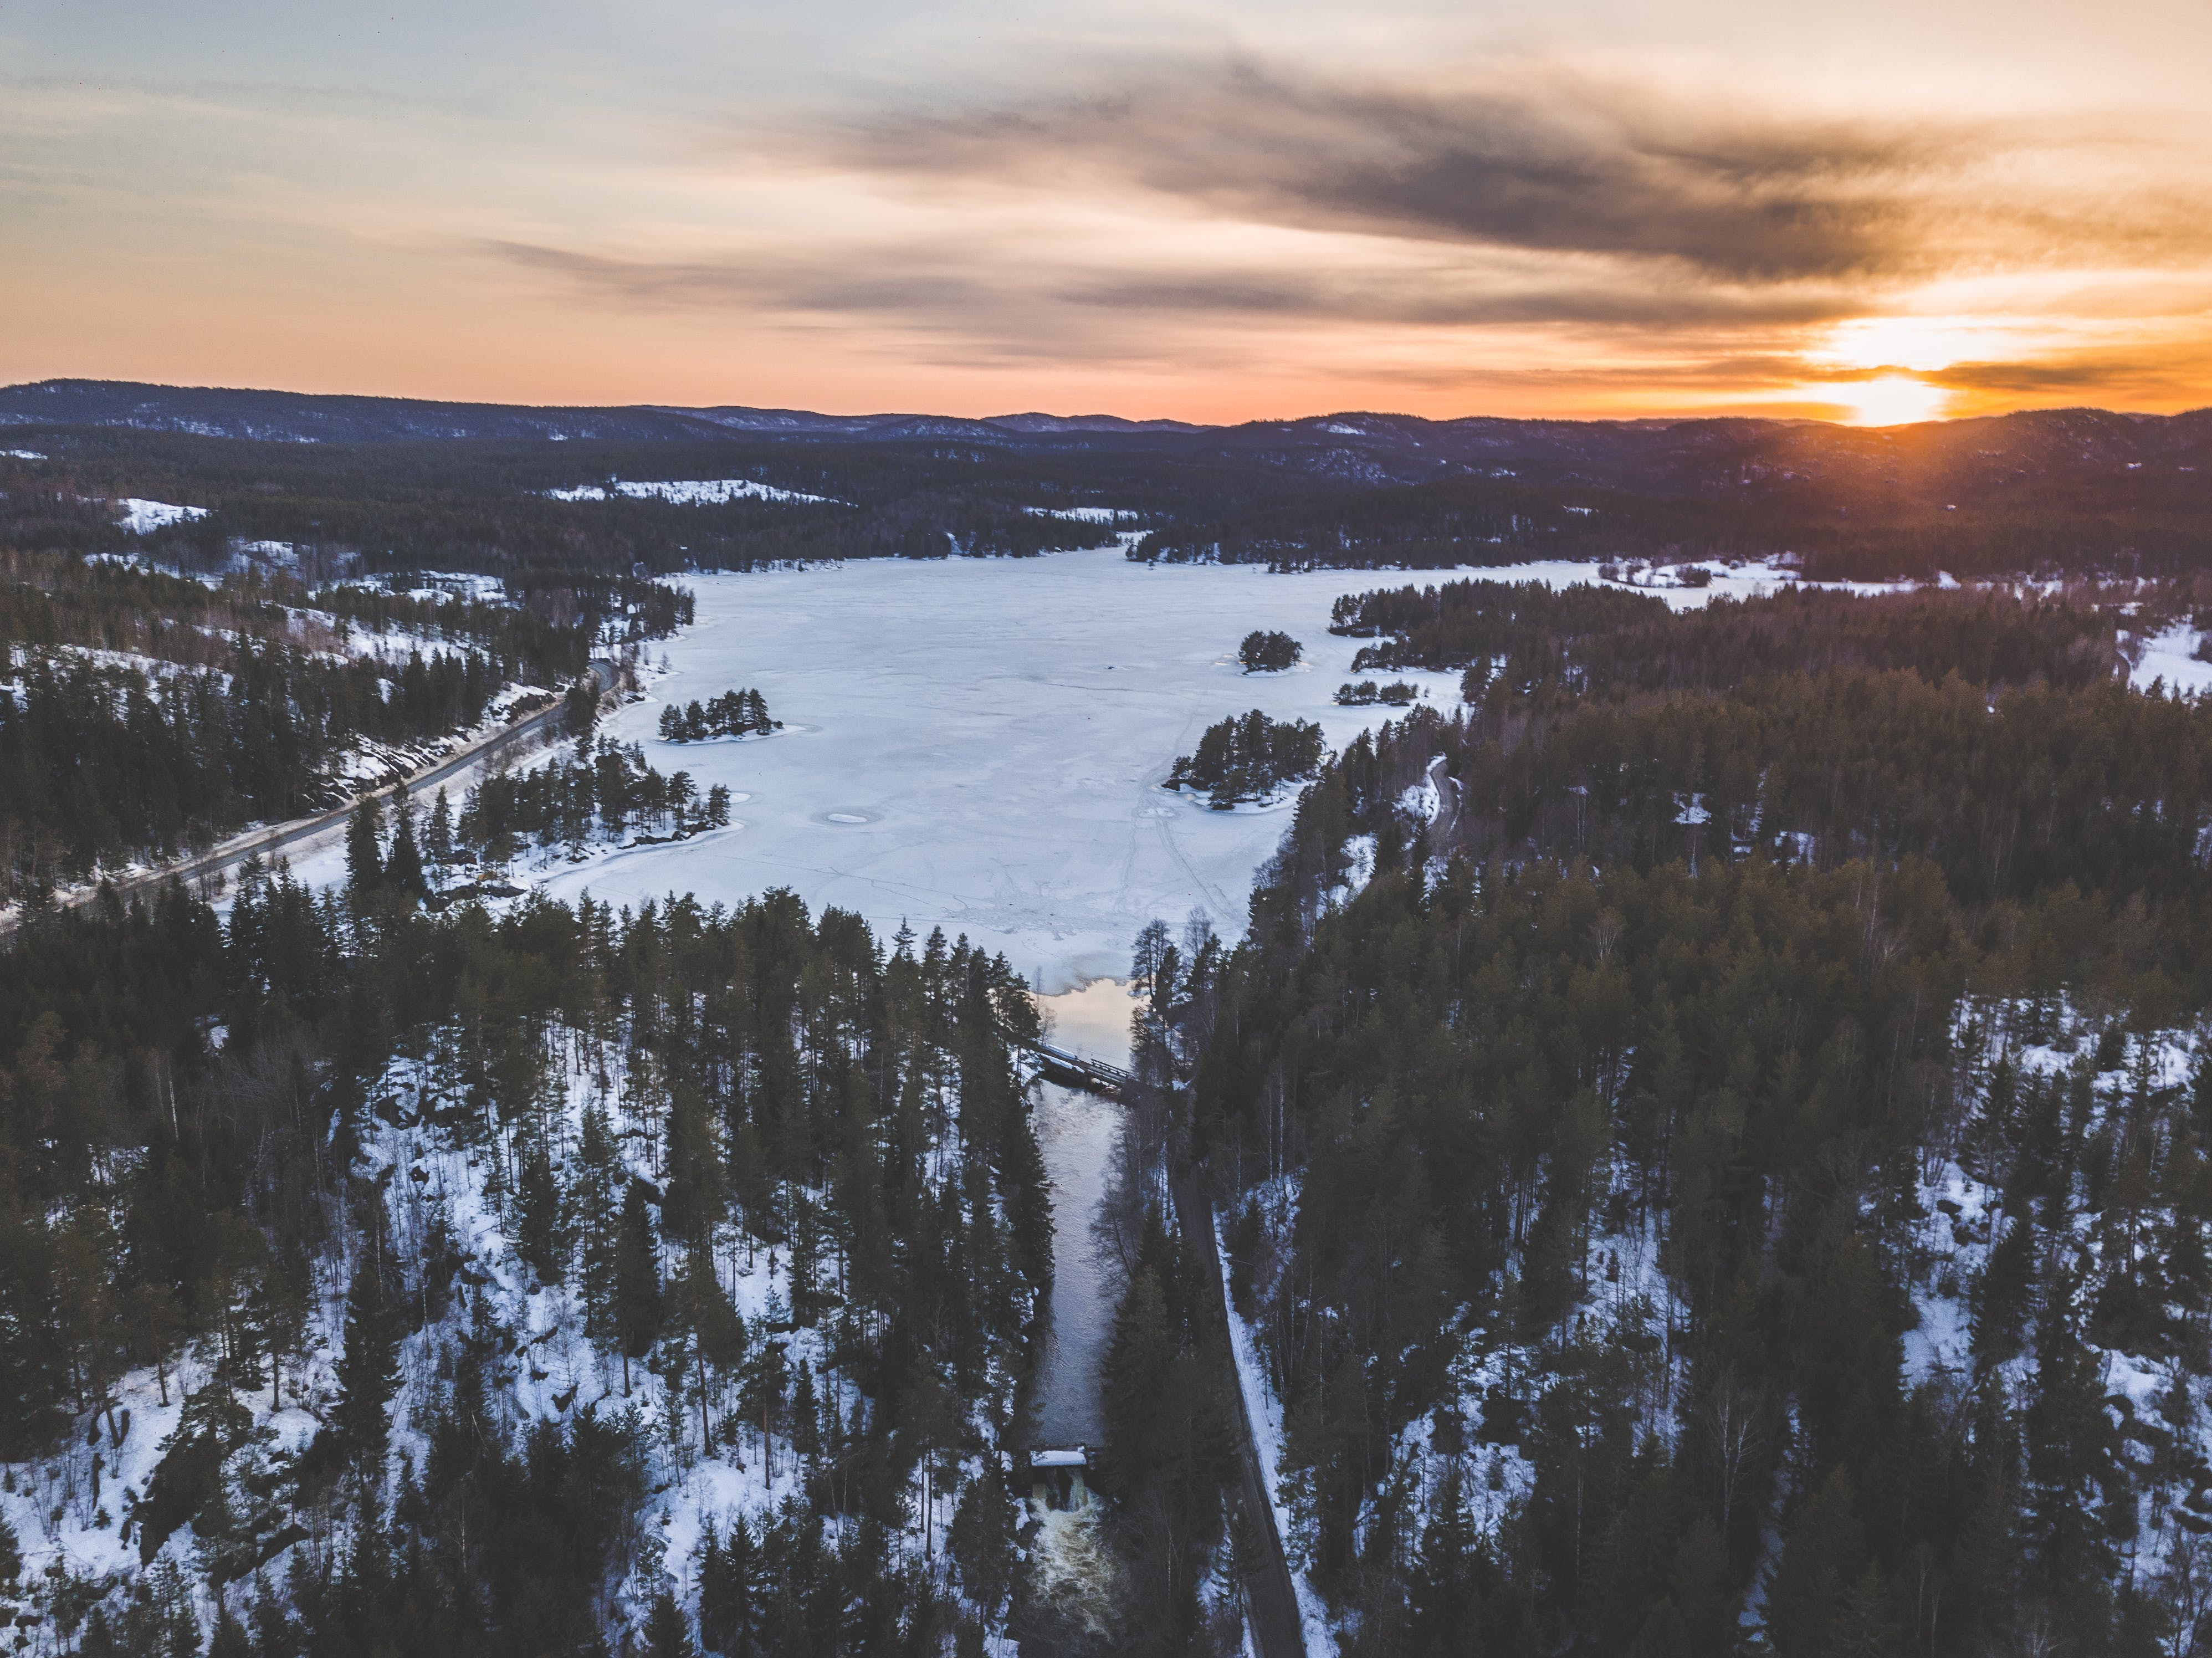 Aerial Photo Of Snowy Forest During Sunset